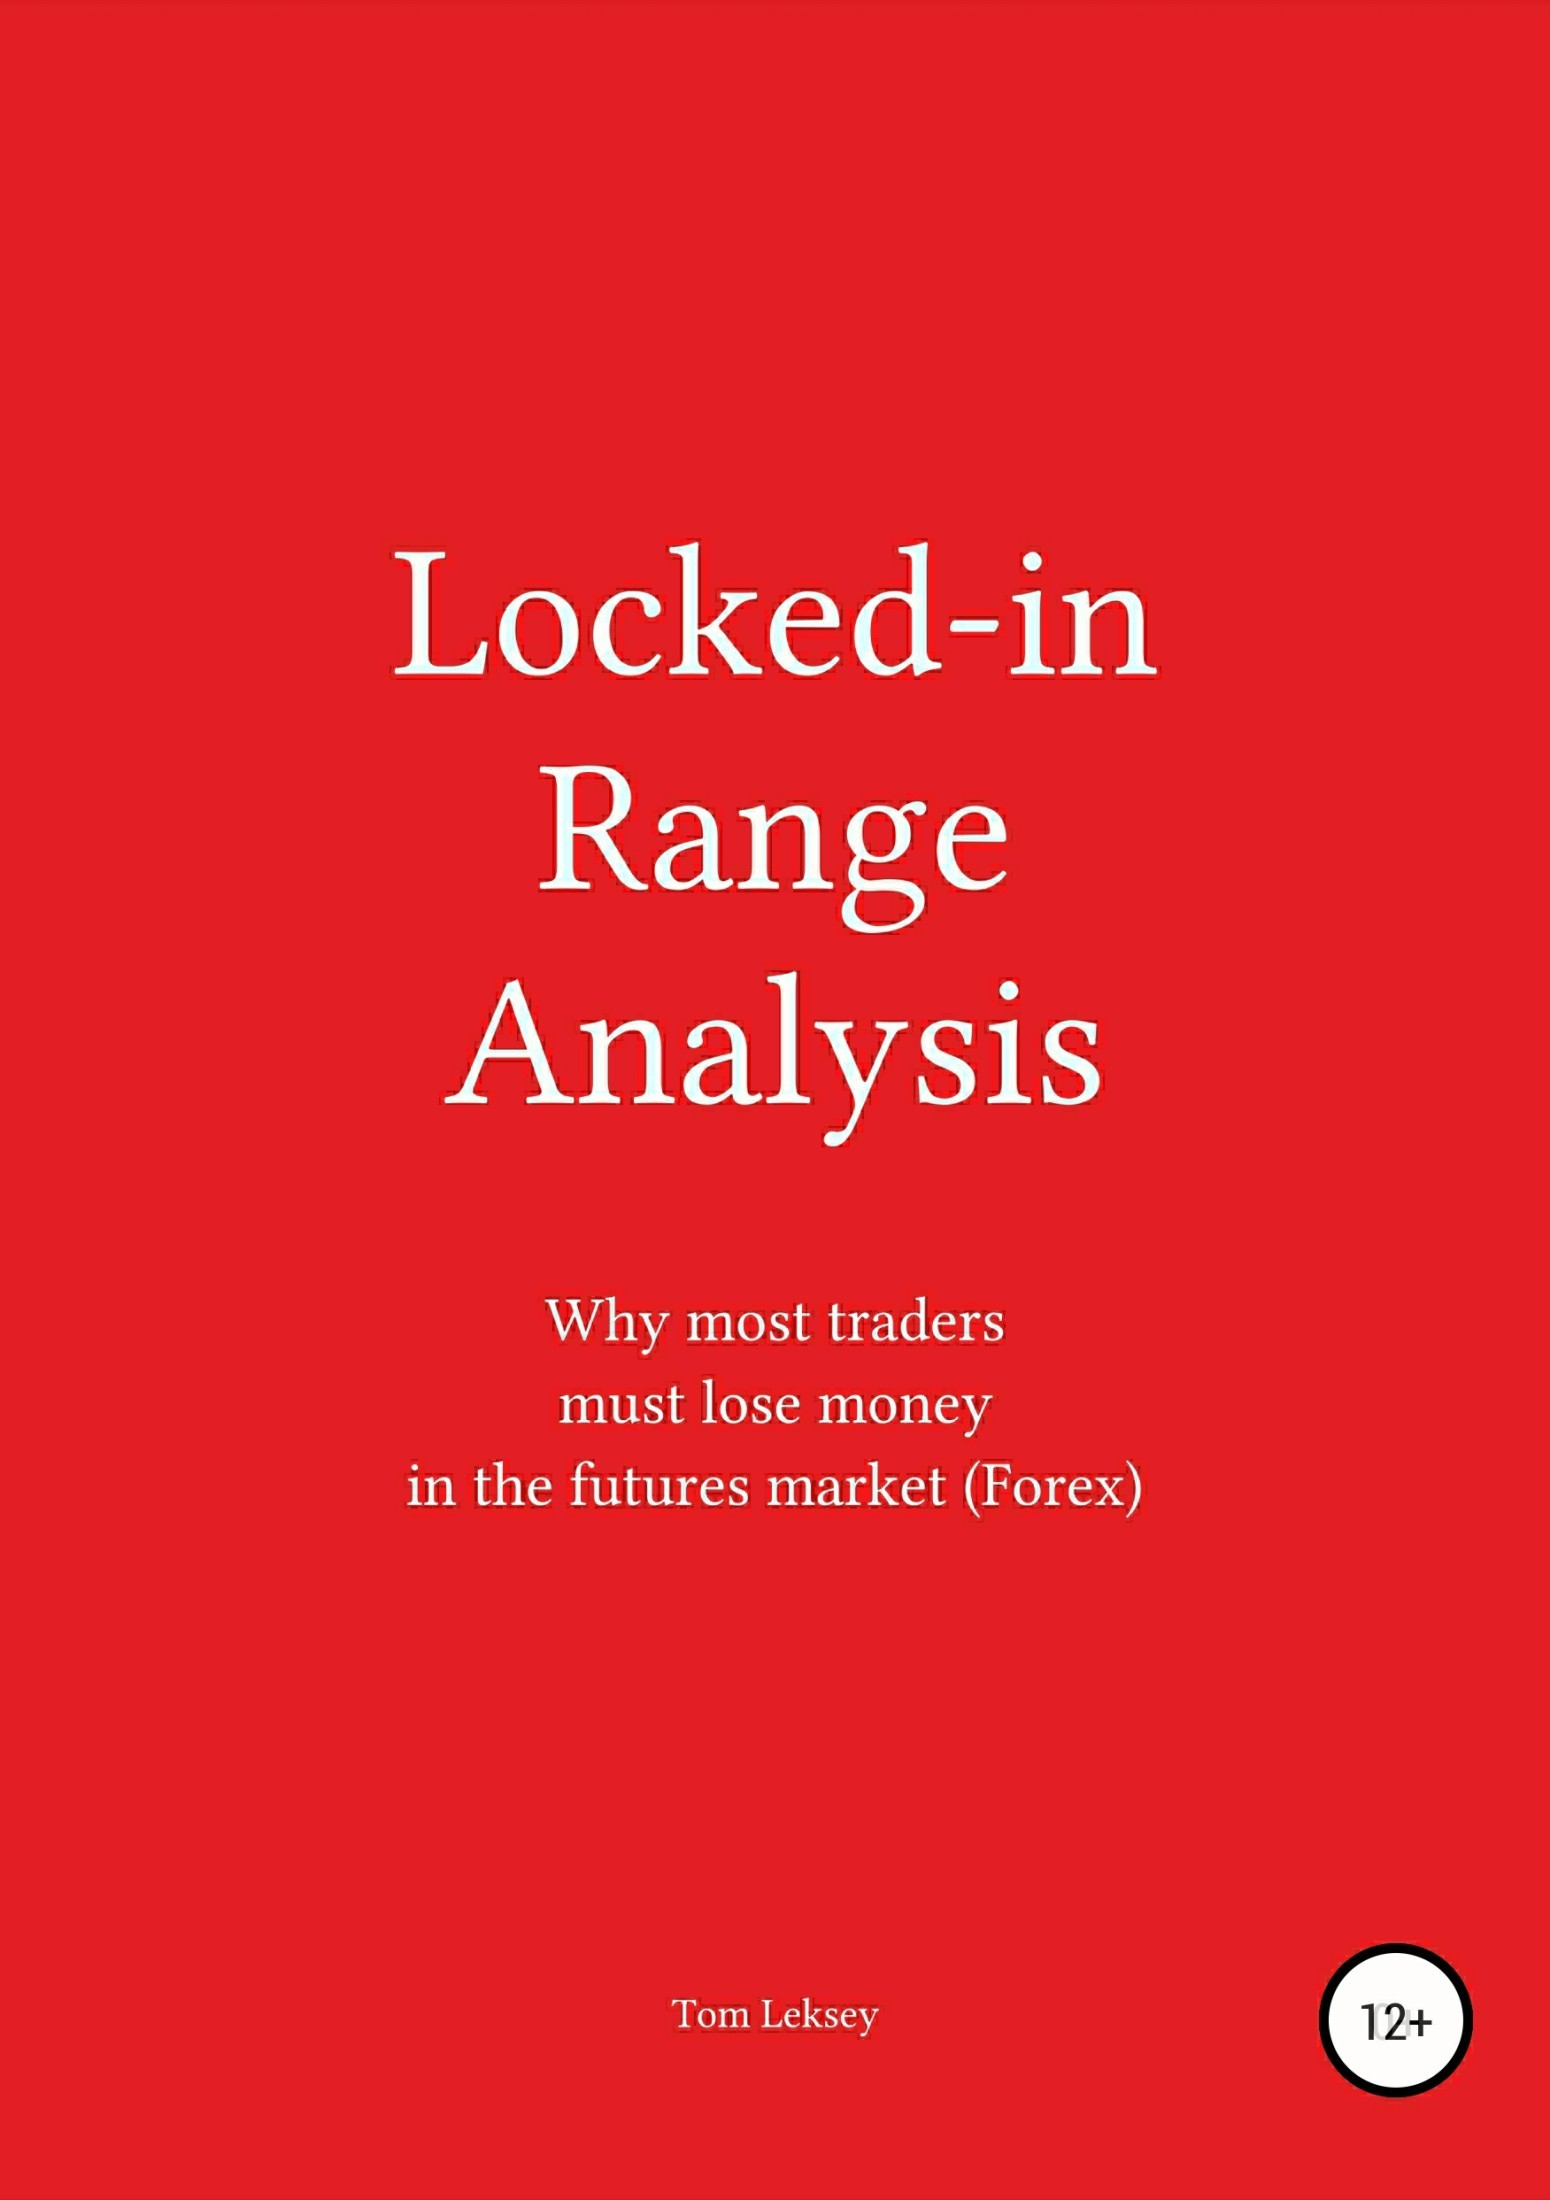 Tom Leksey Locked-in Range Analysis: Why most traders must lose money in the futures market (Forex) genuine leather business vintage men s money purse short solid wallets dollar price male carteira masculina with card holders